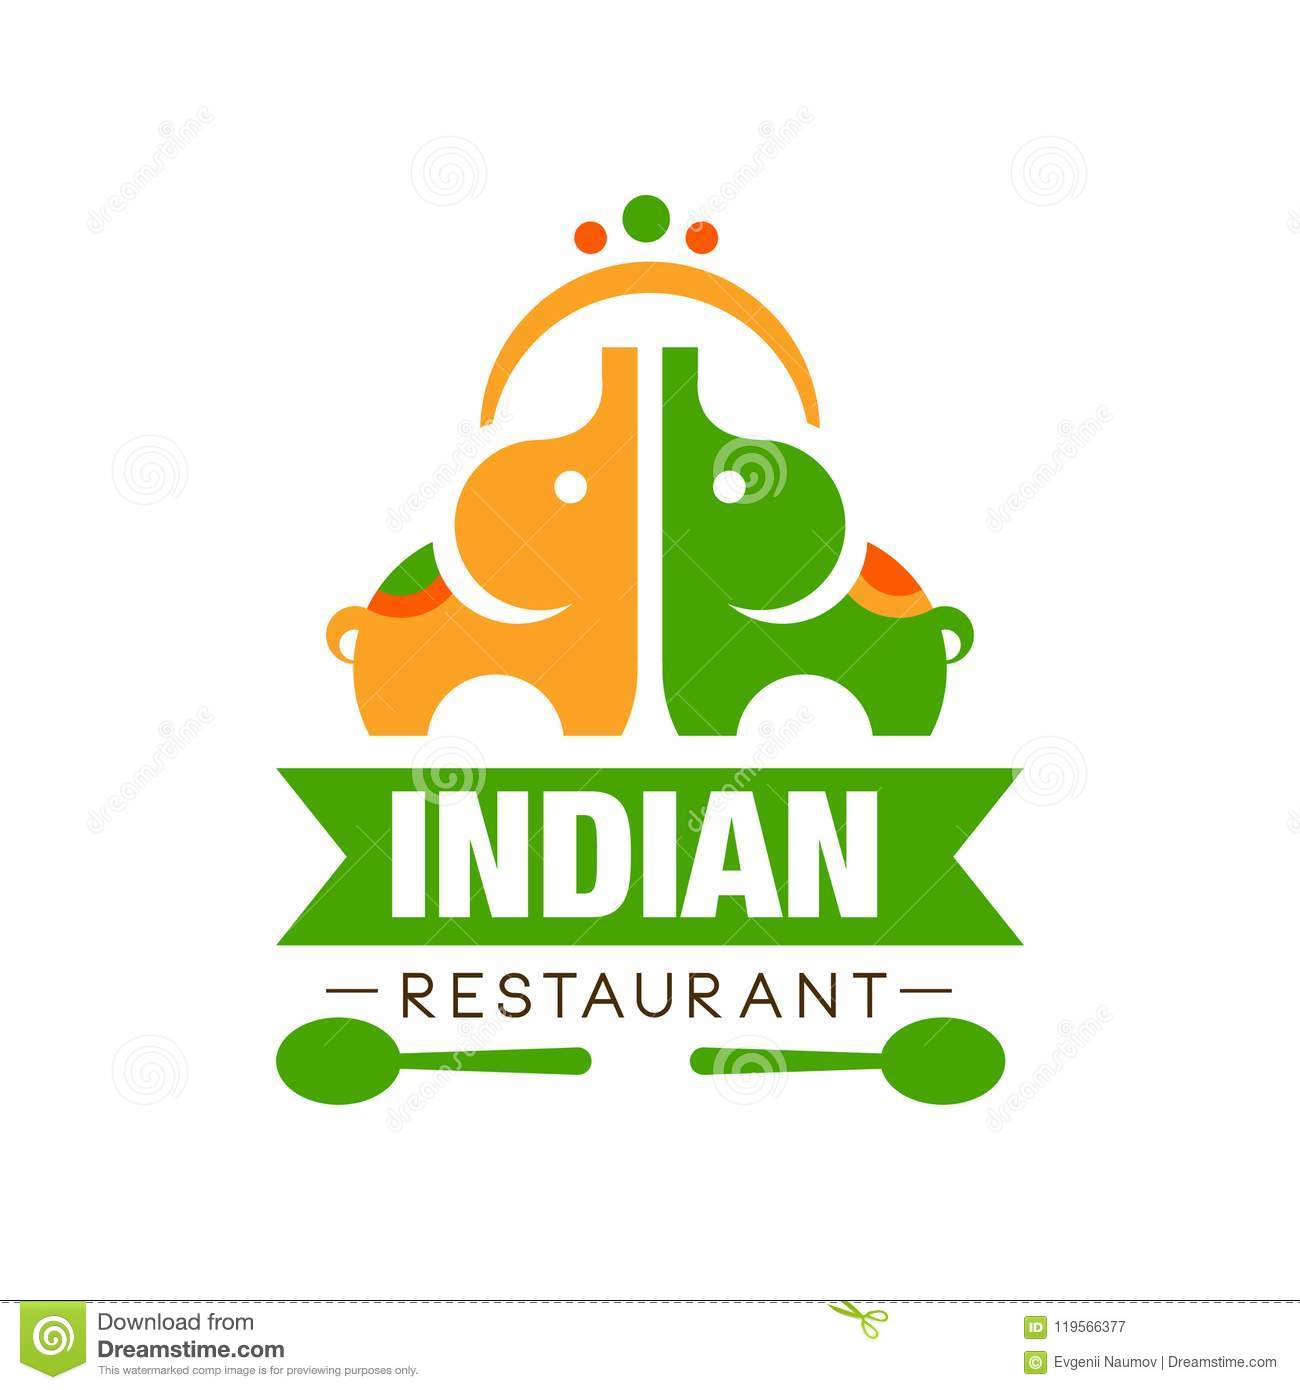 Indian Restaurant Logo Design Authentic Traditional Continental Food Label Can Be Used For Cafe Bar Restaurant Menu Stock Vector Illustration Of Banner Logo 119566377